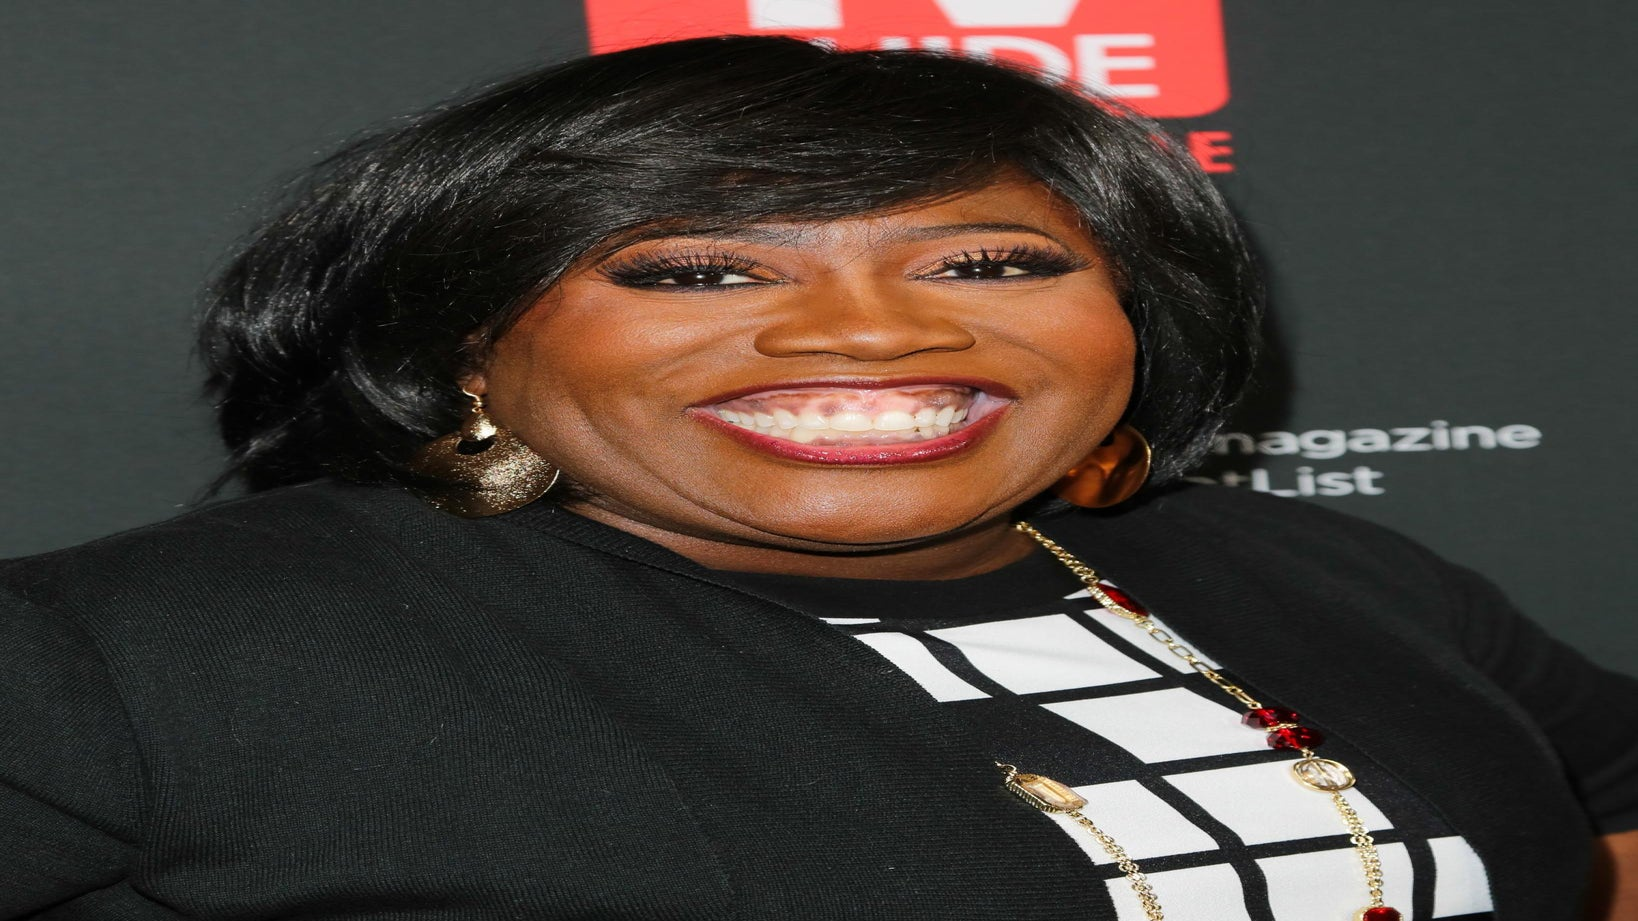 Sheryl Underwood on Living with Incontinence: 'I'm Not Ashamed'